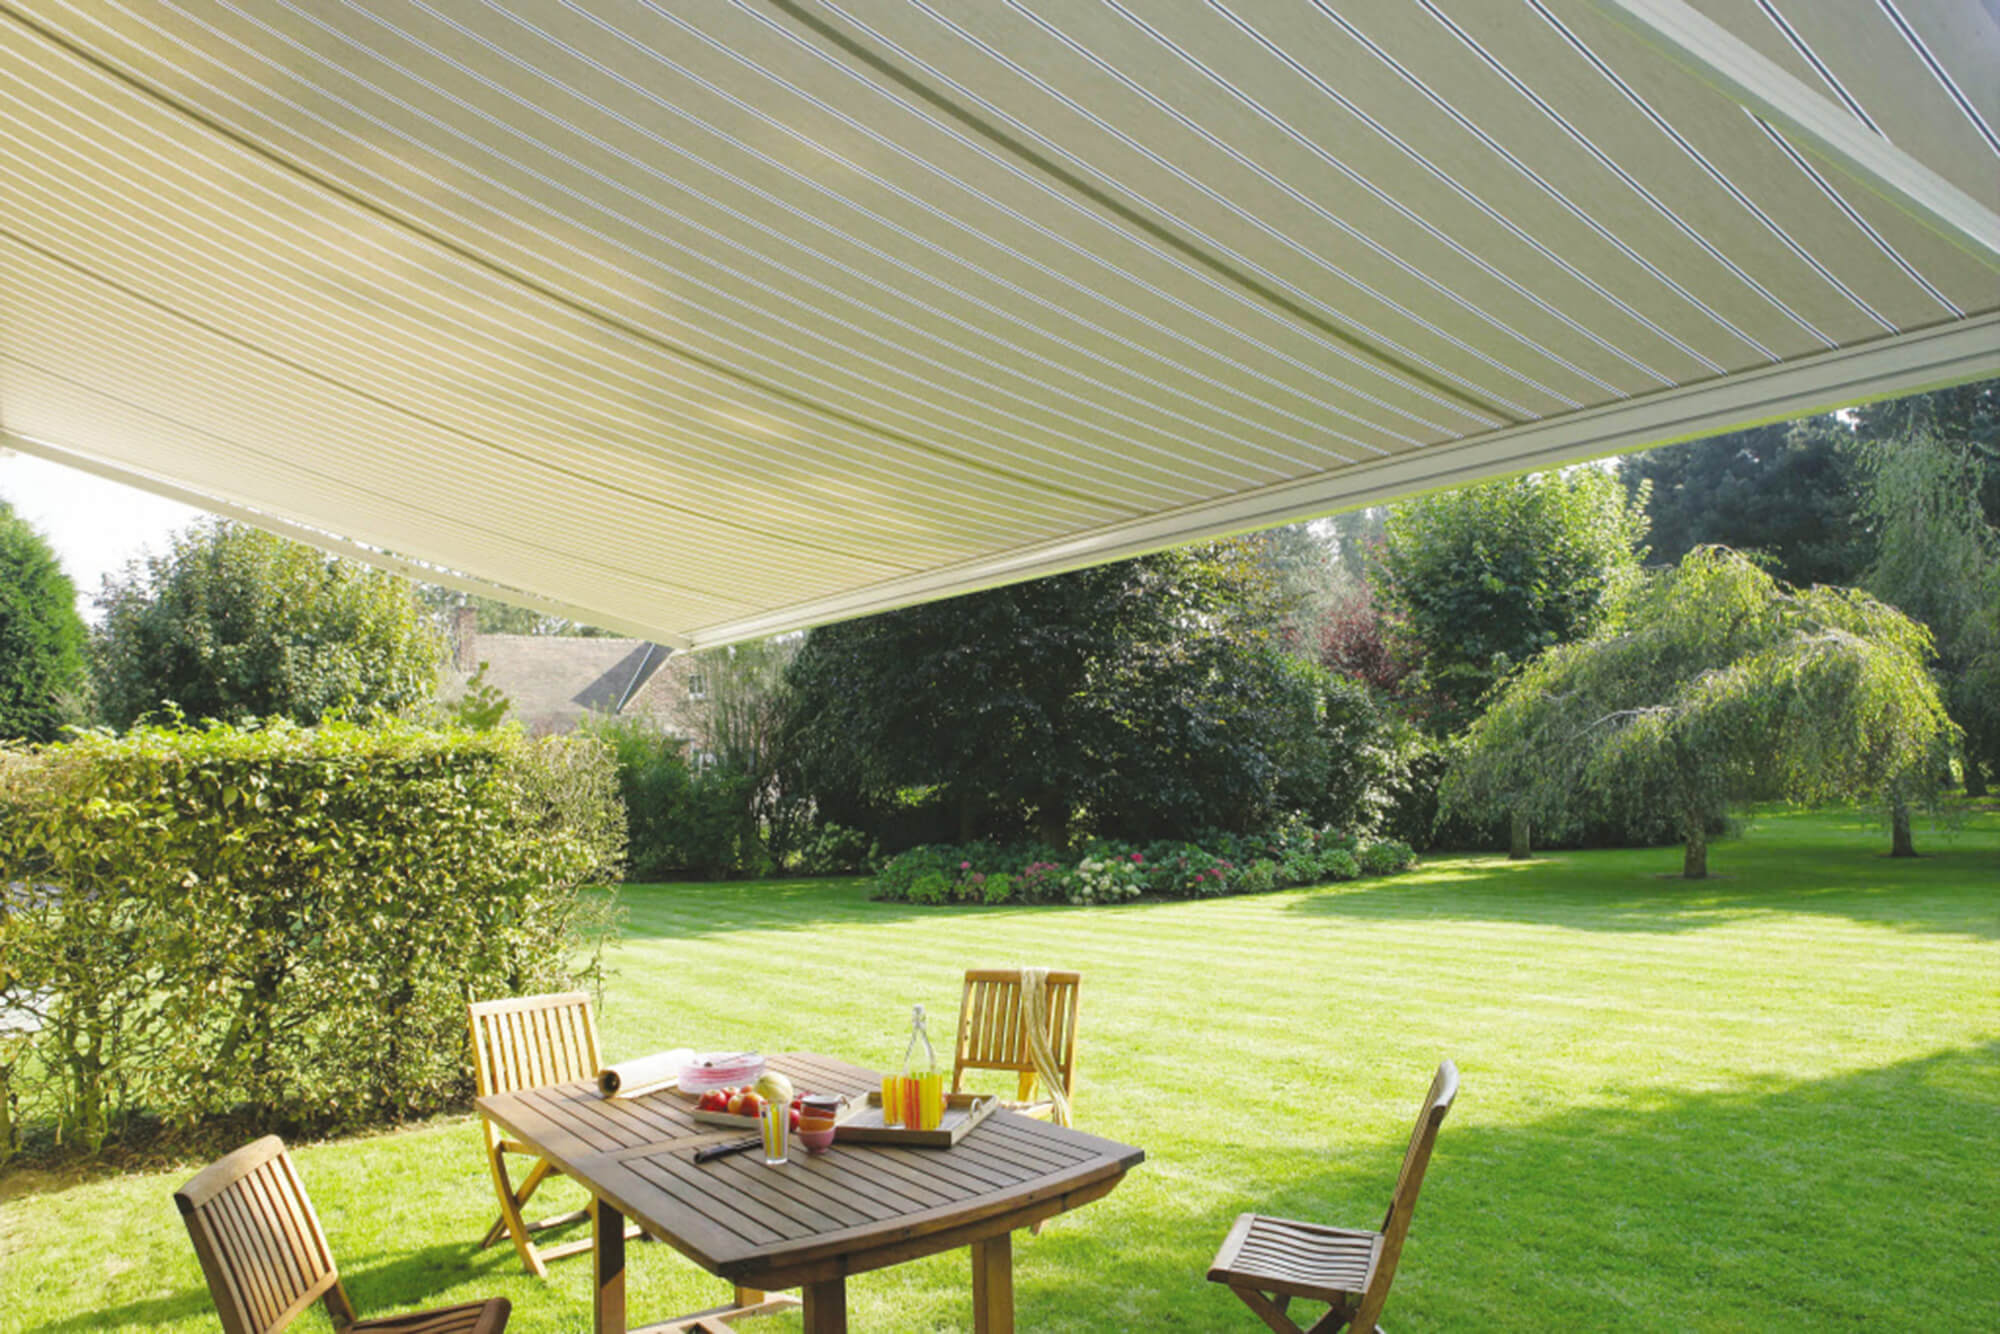 Sunbrella European Shade Collection